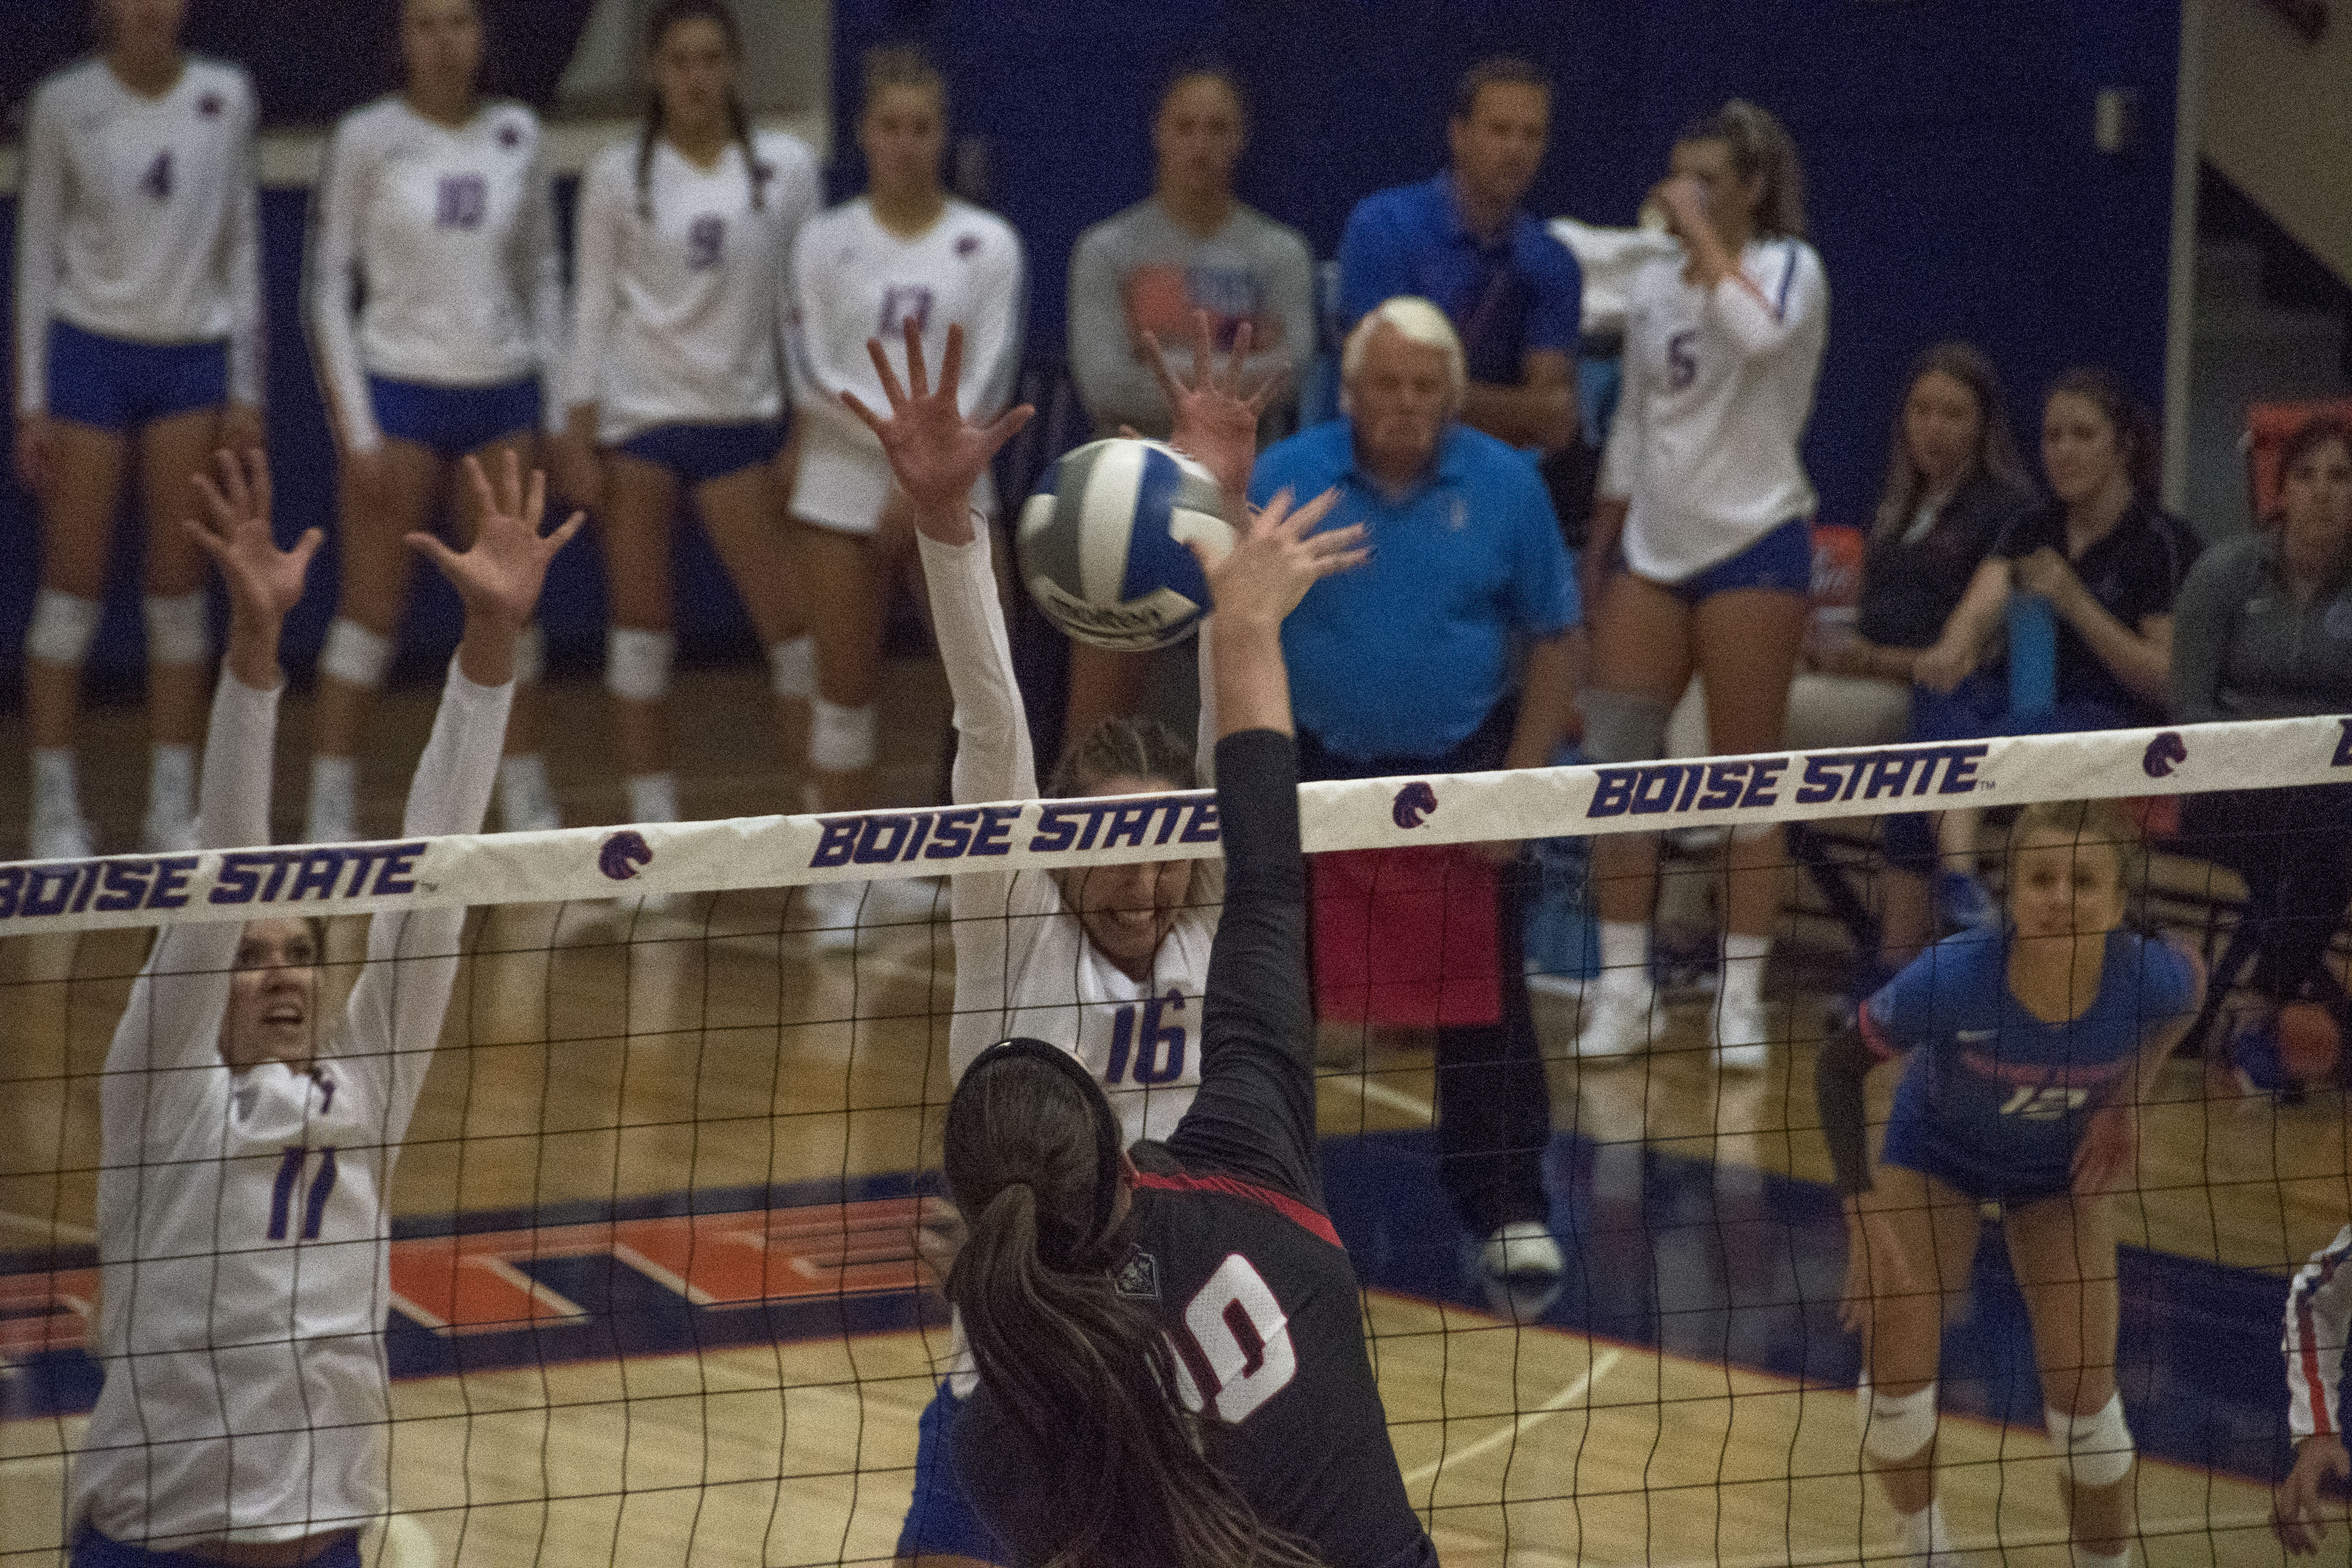 Photos: Boise State Volleyball took on New Mexico Saturday   KBOI